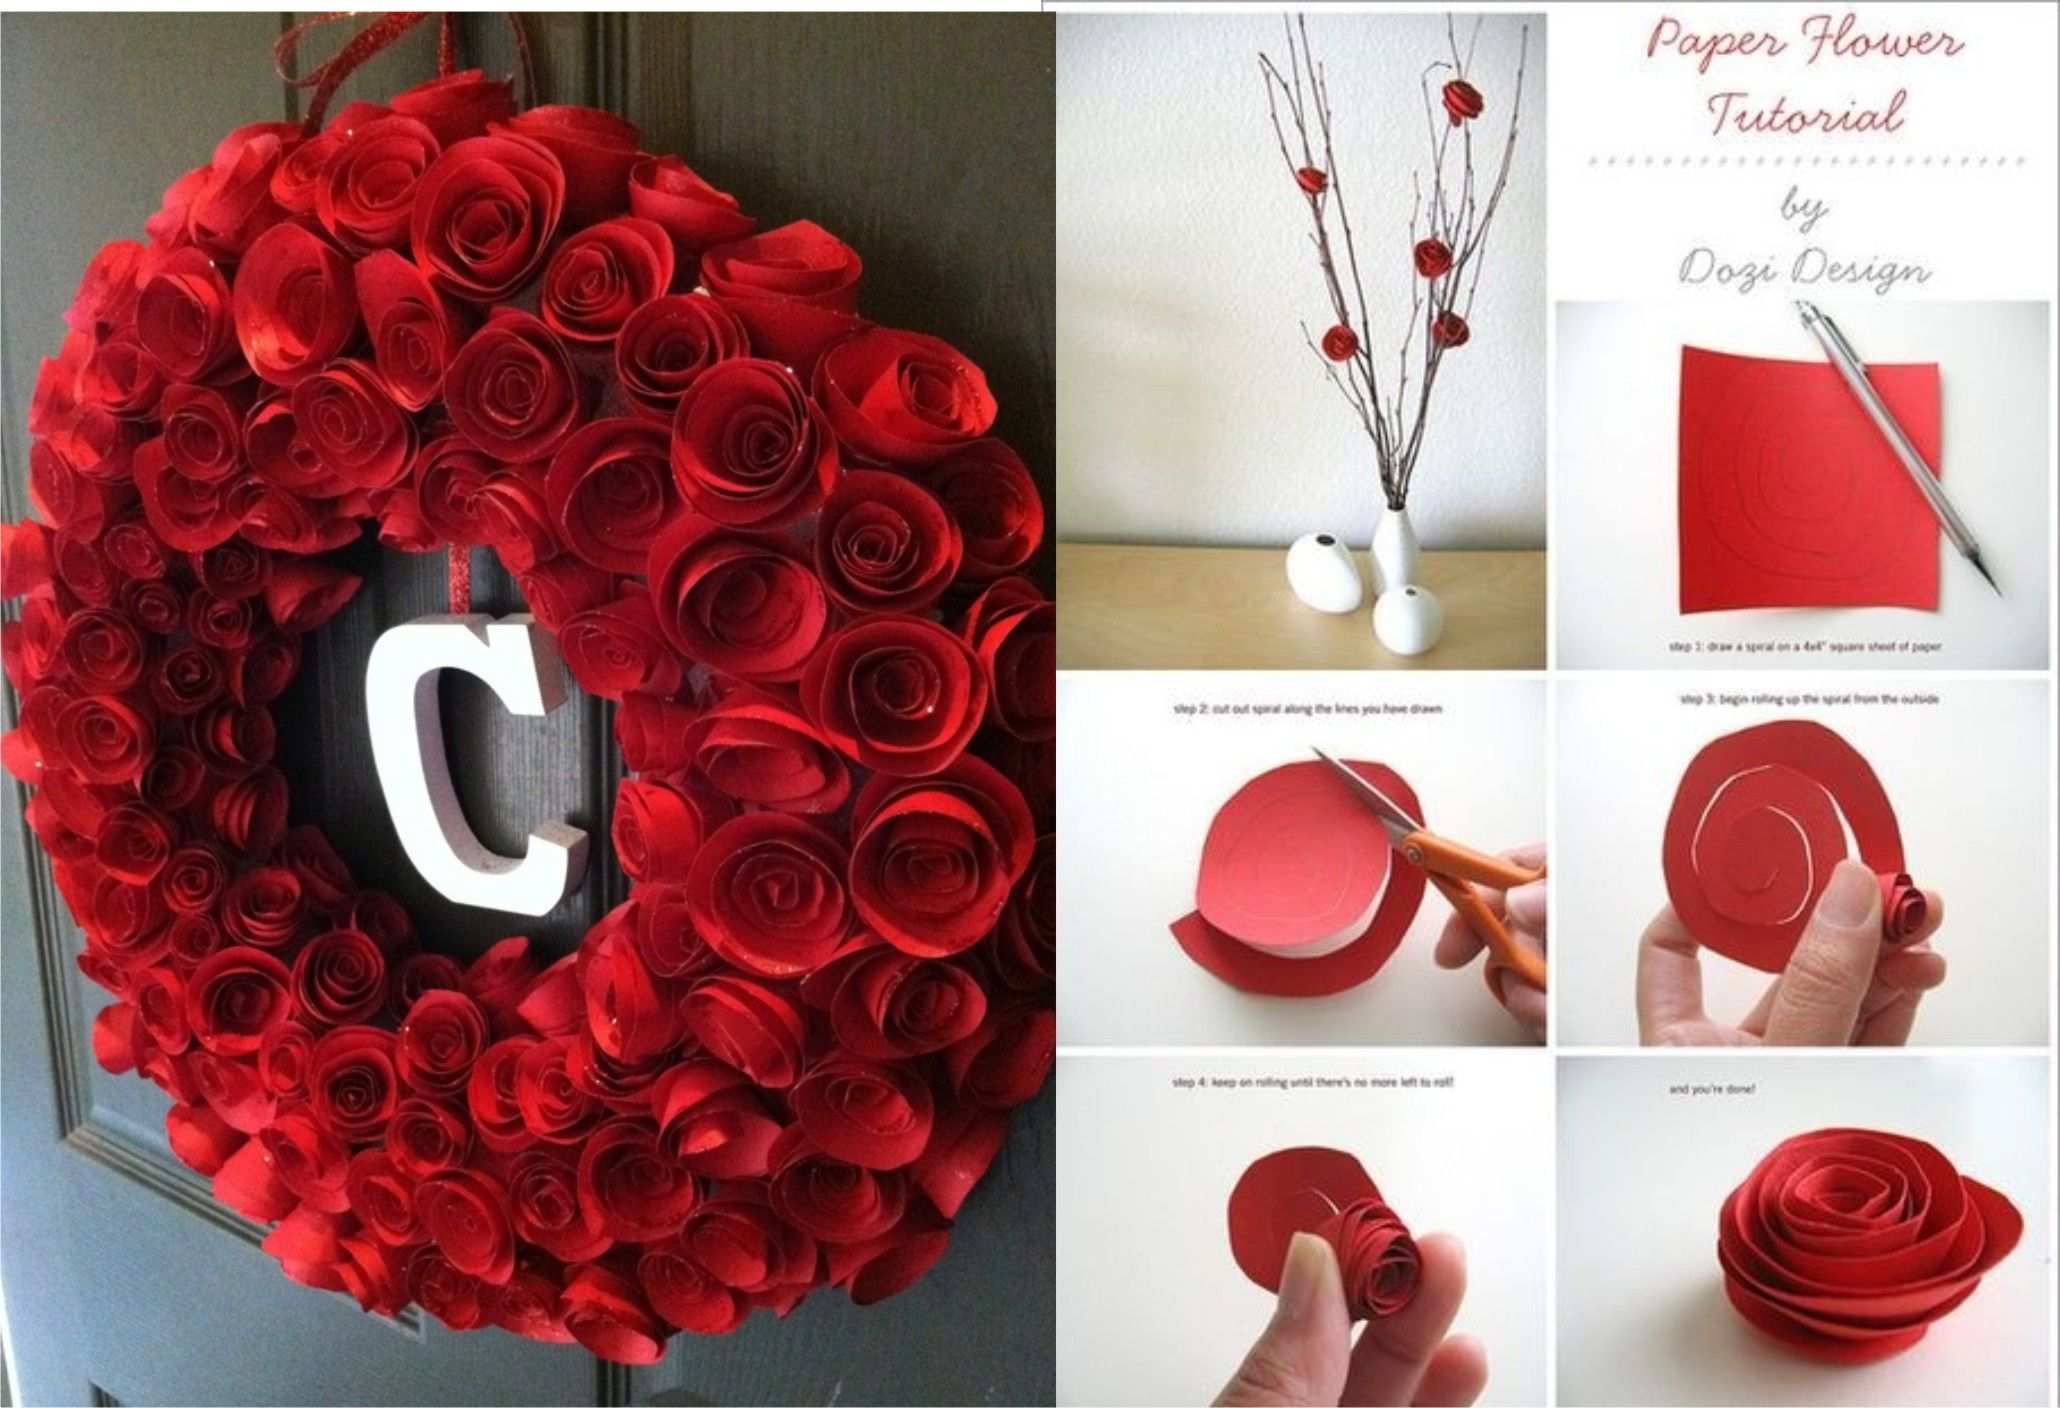 Famous paper flower tutorial by dozi design sketch wedding and two different postingsme technique good idearrr pinterest mightylinksfo